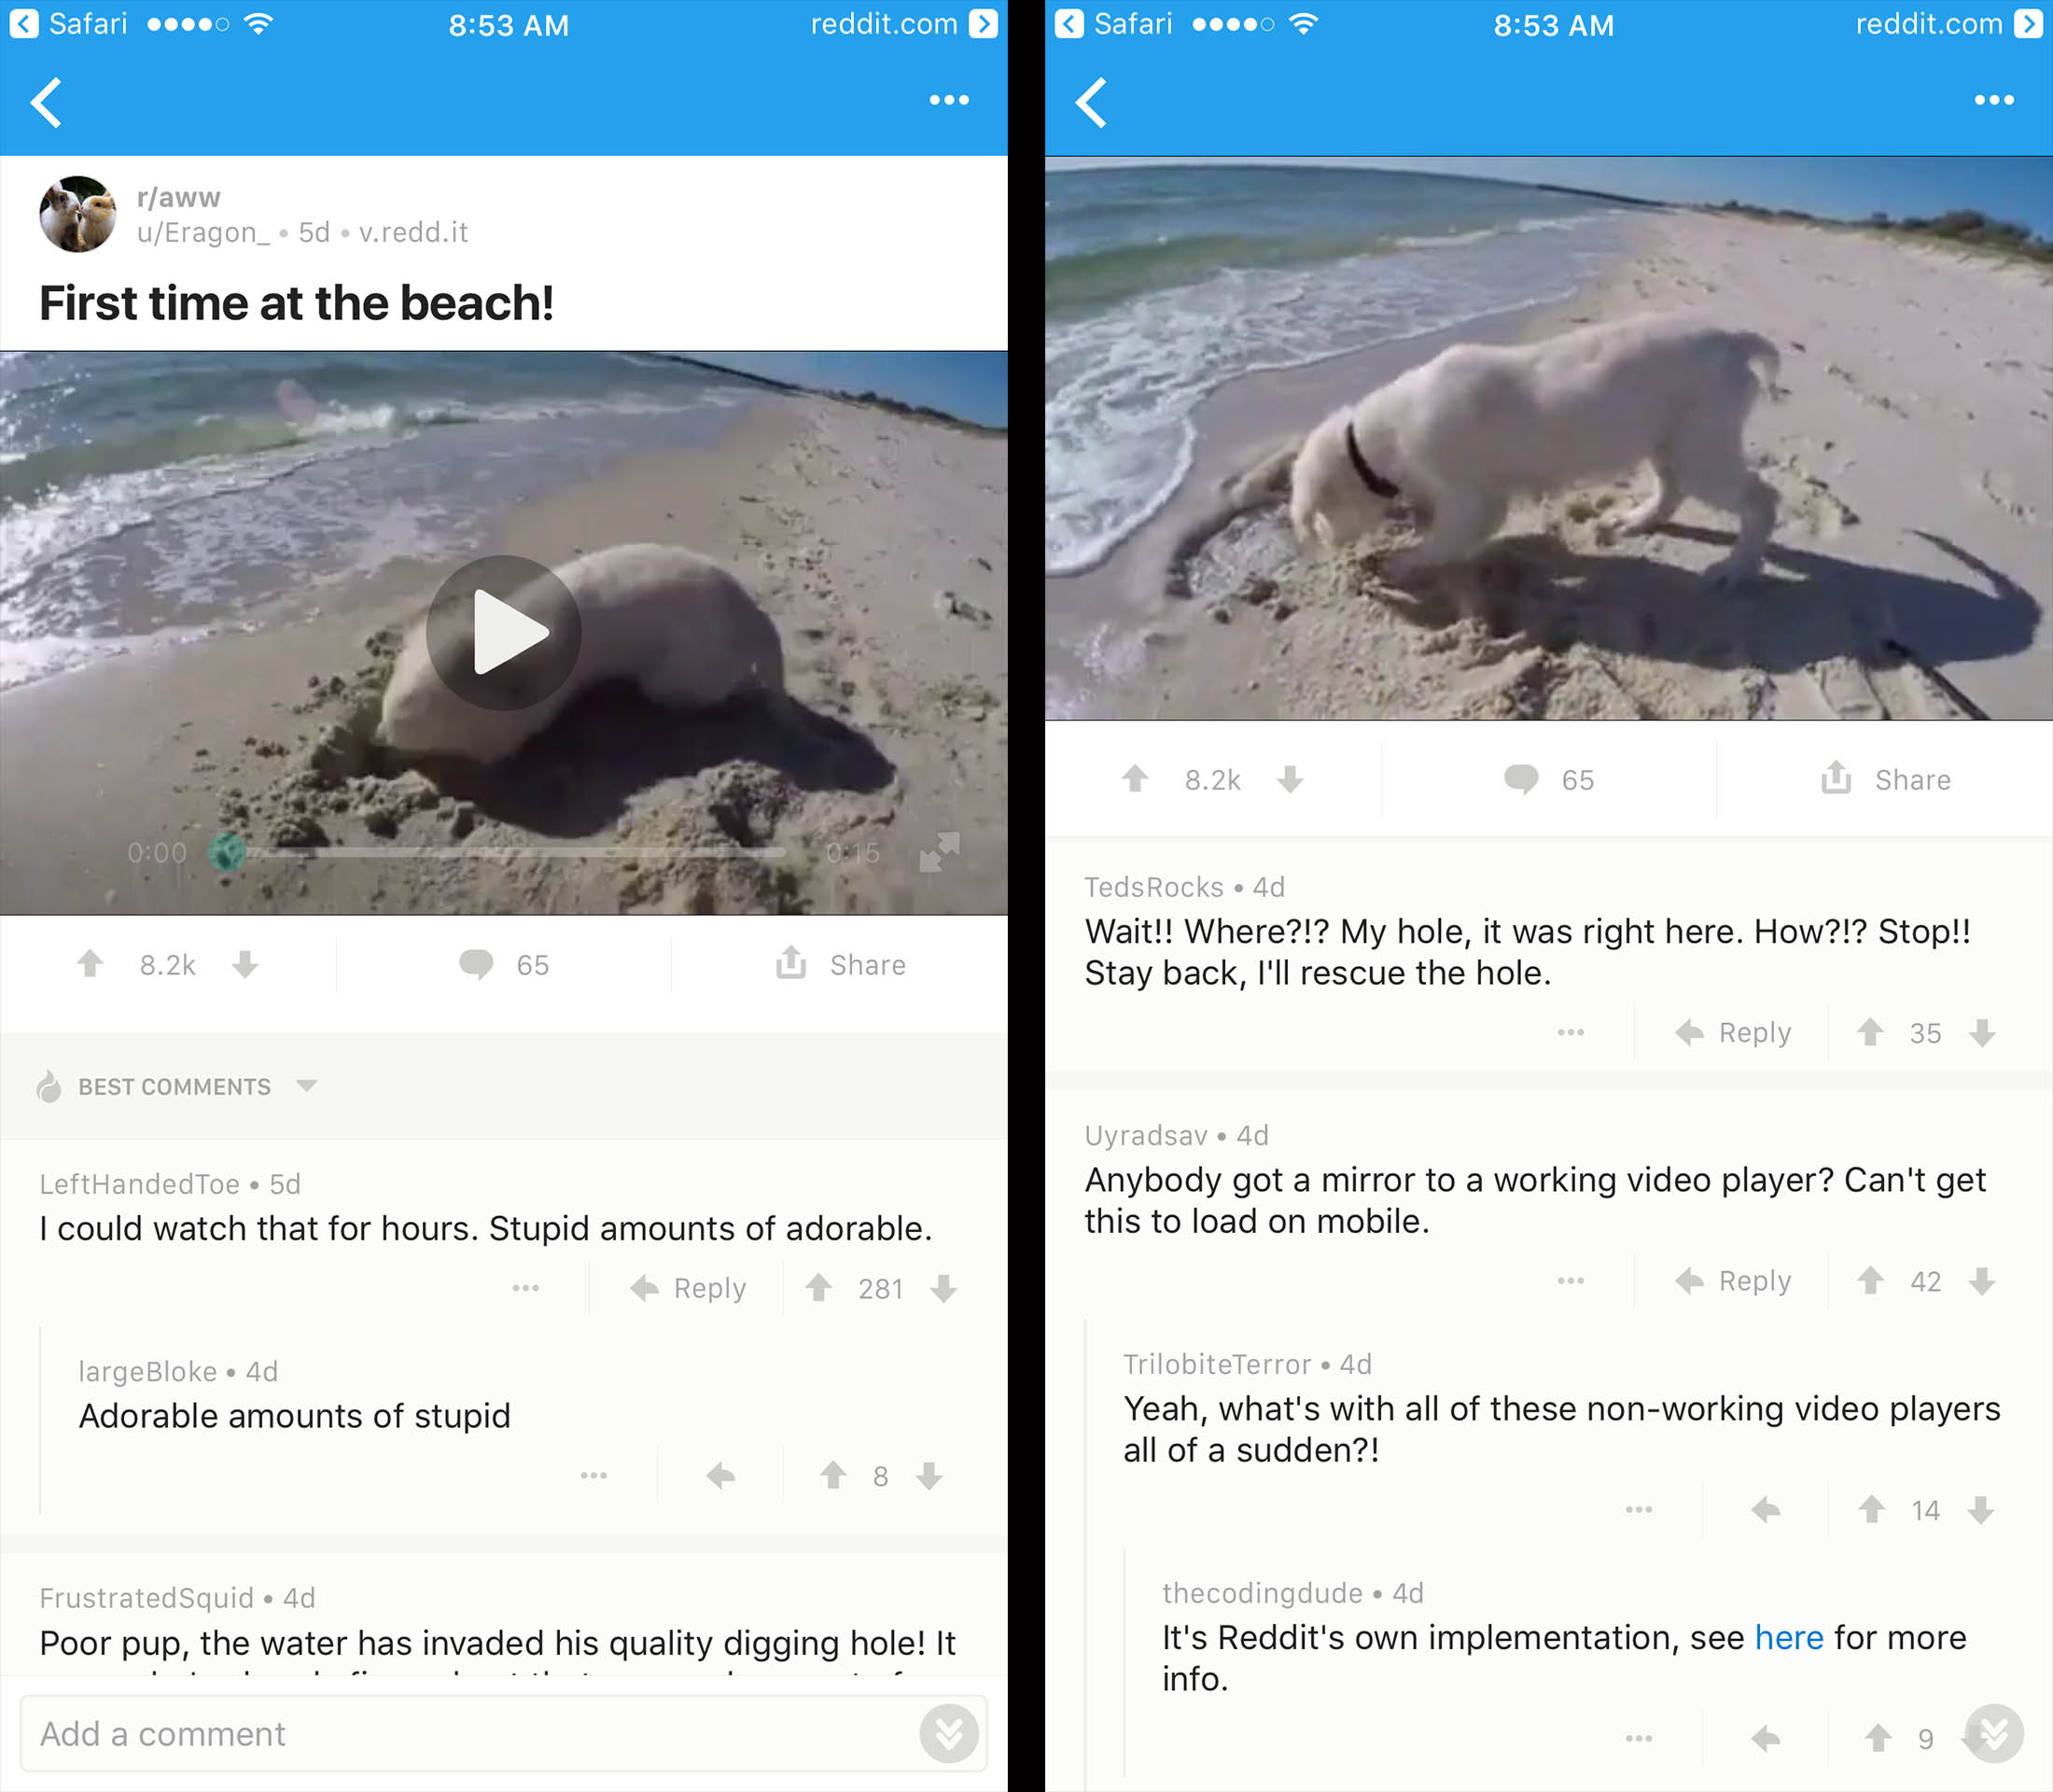 now you can post videos directly to reddit, no third-party service